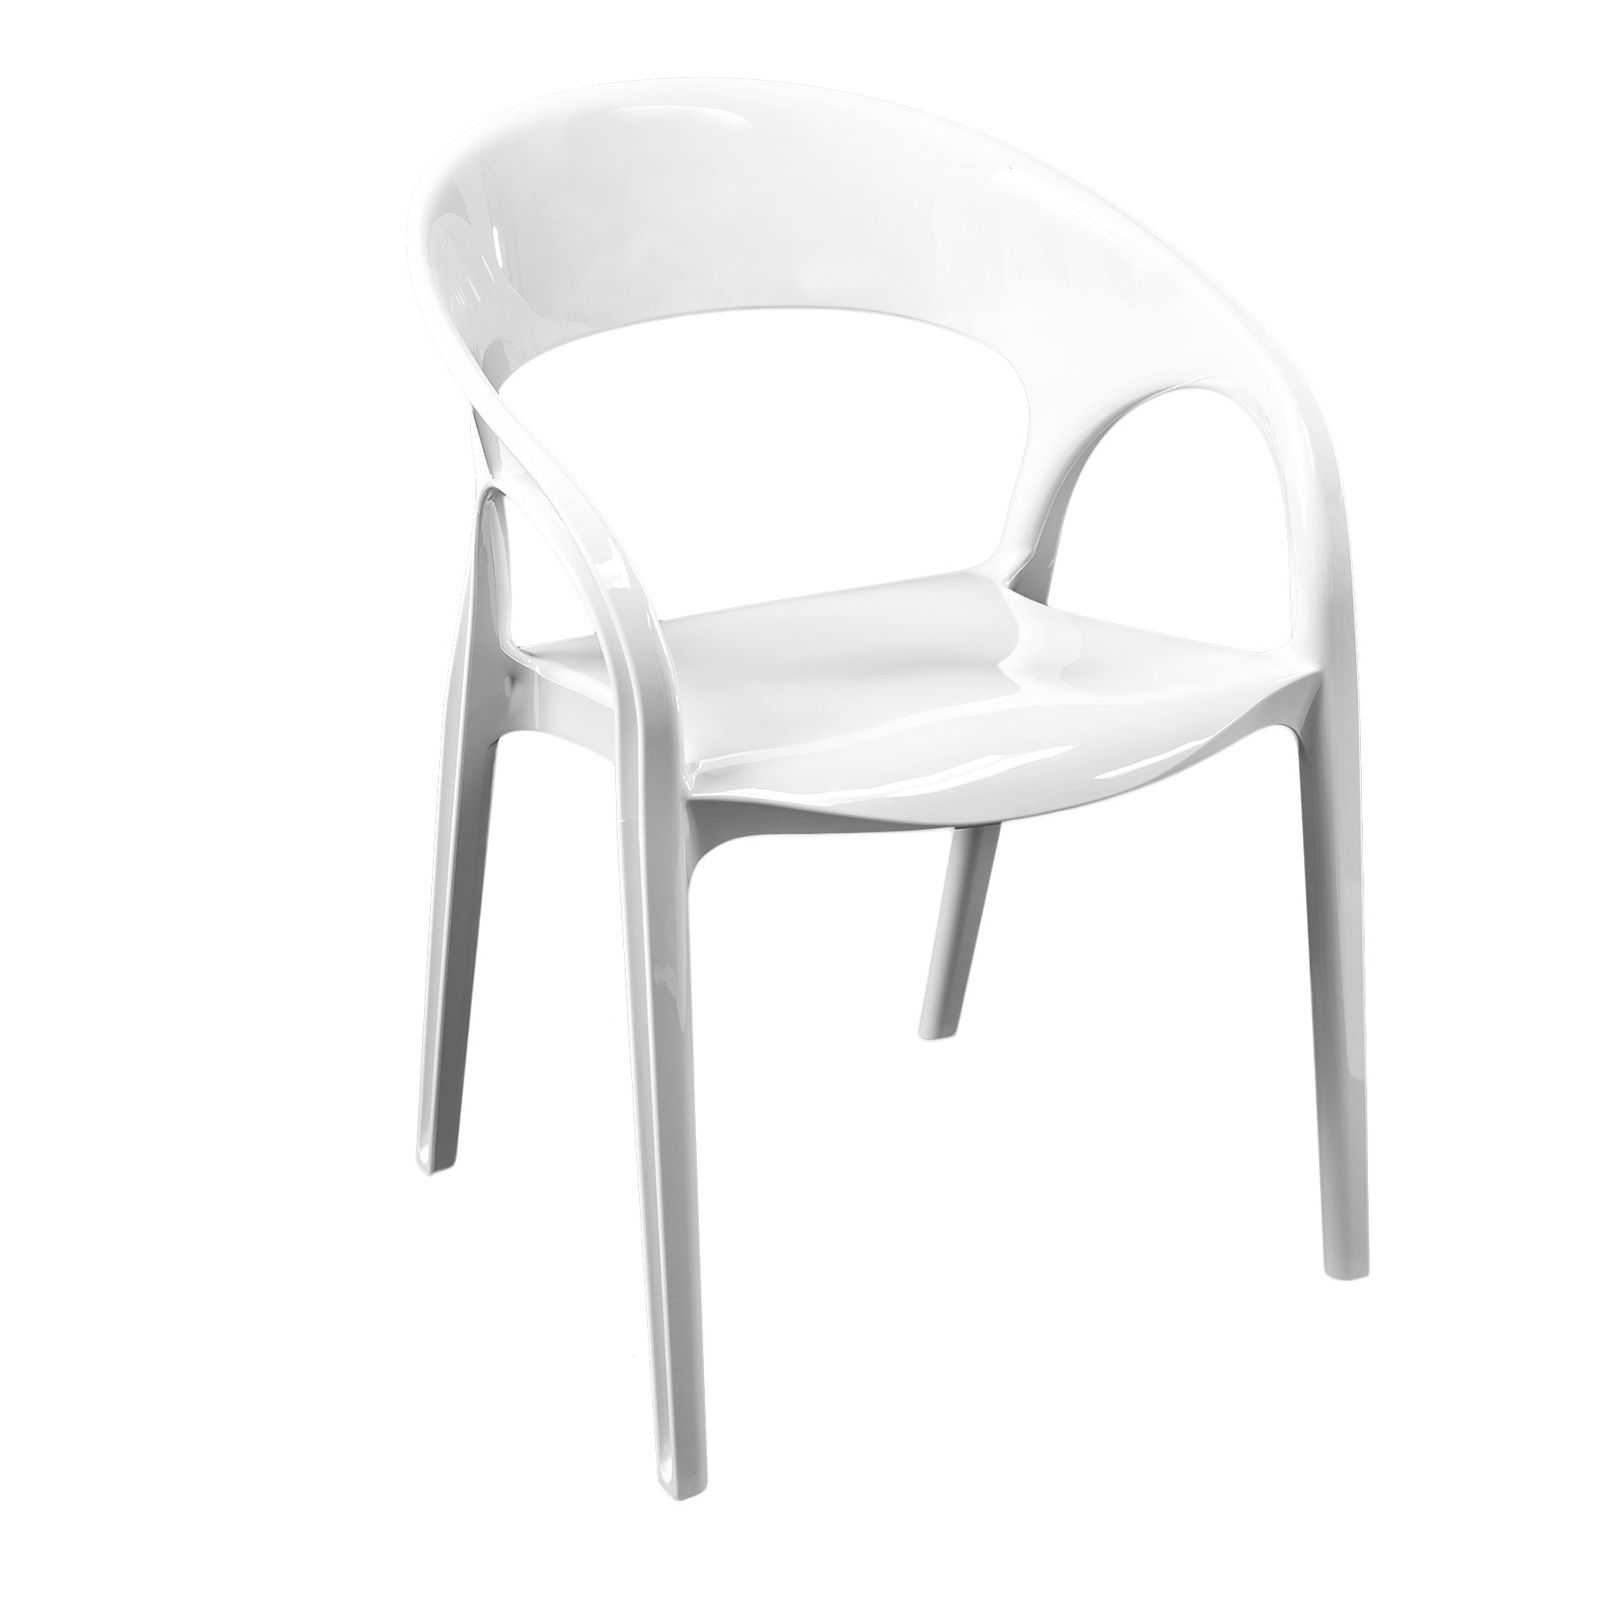 Florida Seating GOSSIP/WHITE chair, armchair, stacking, outdoor